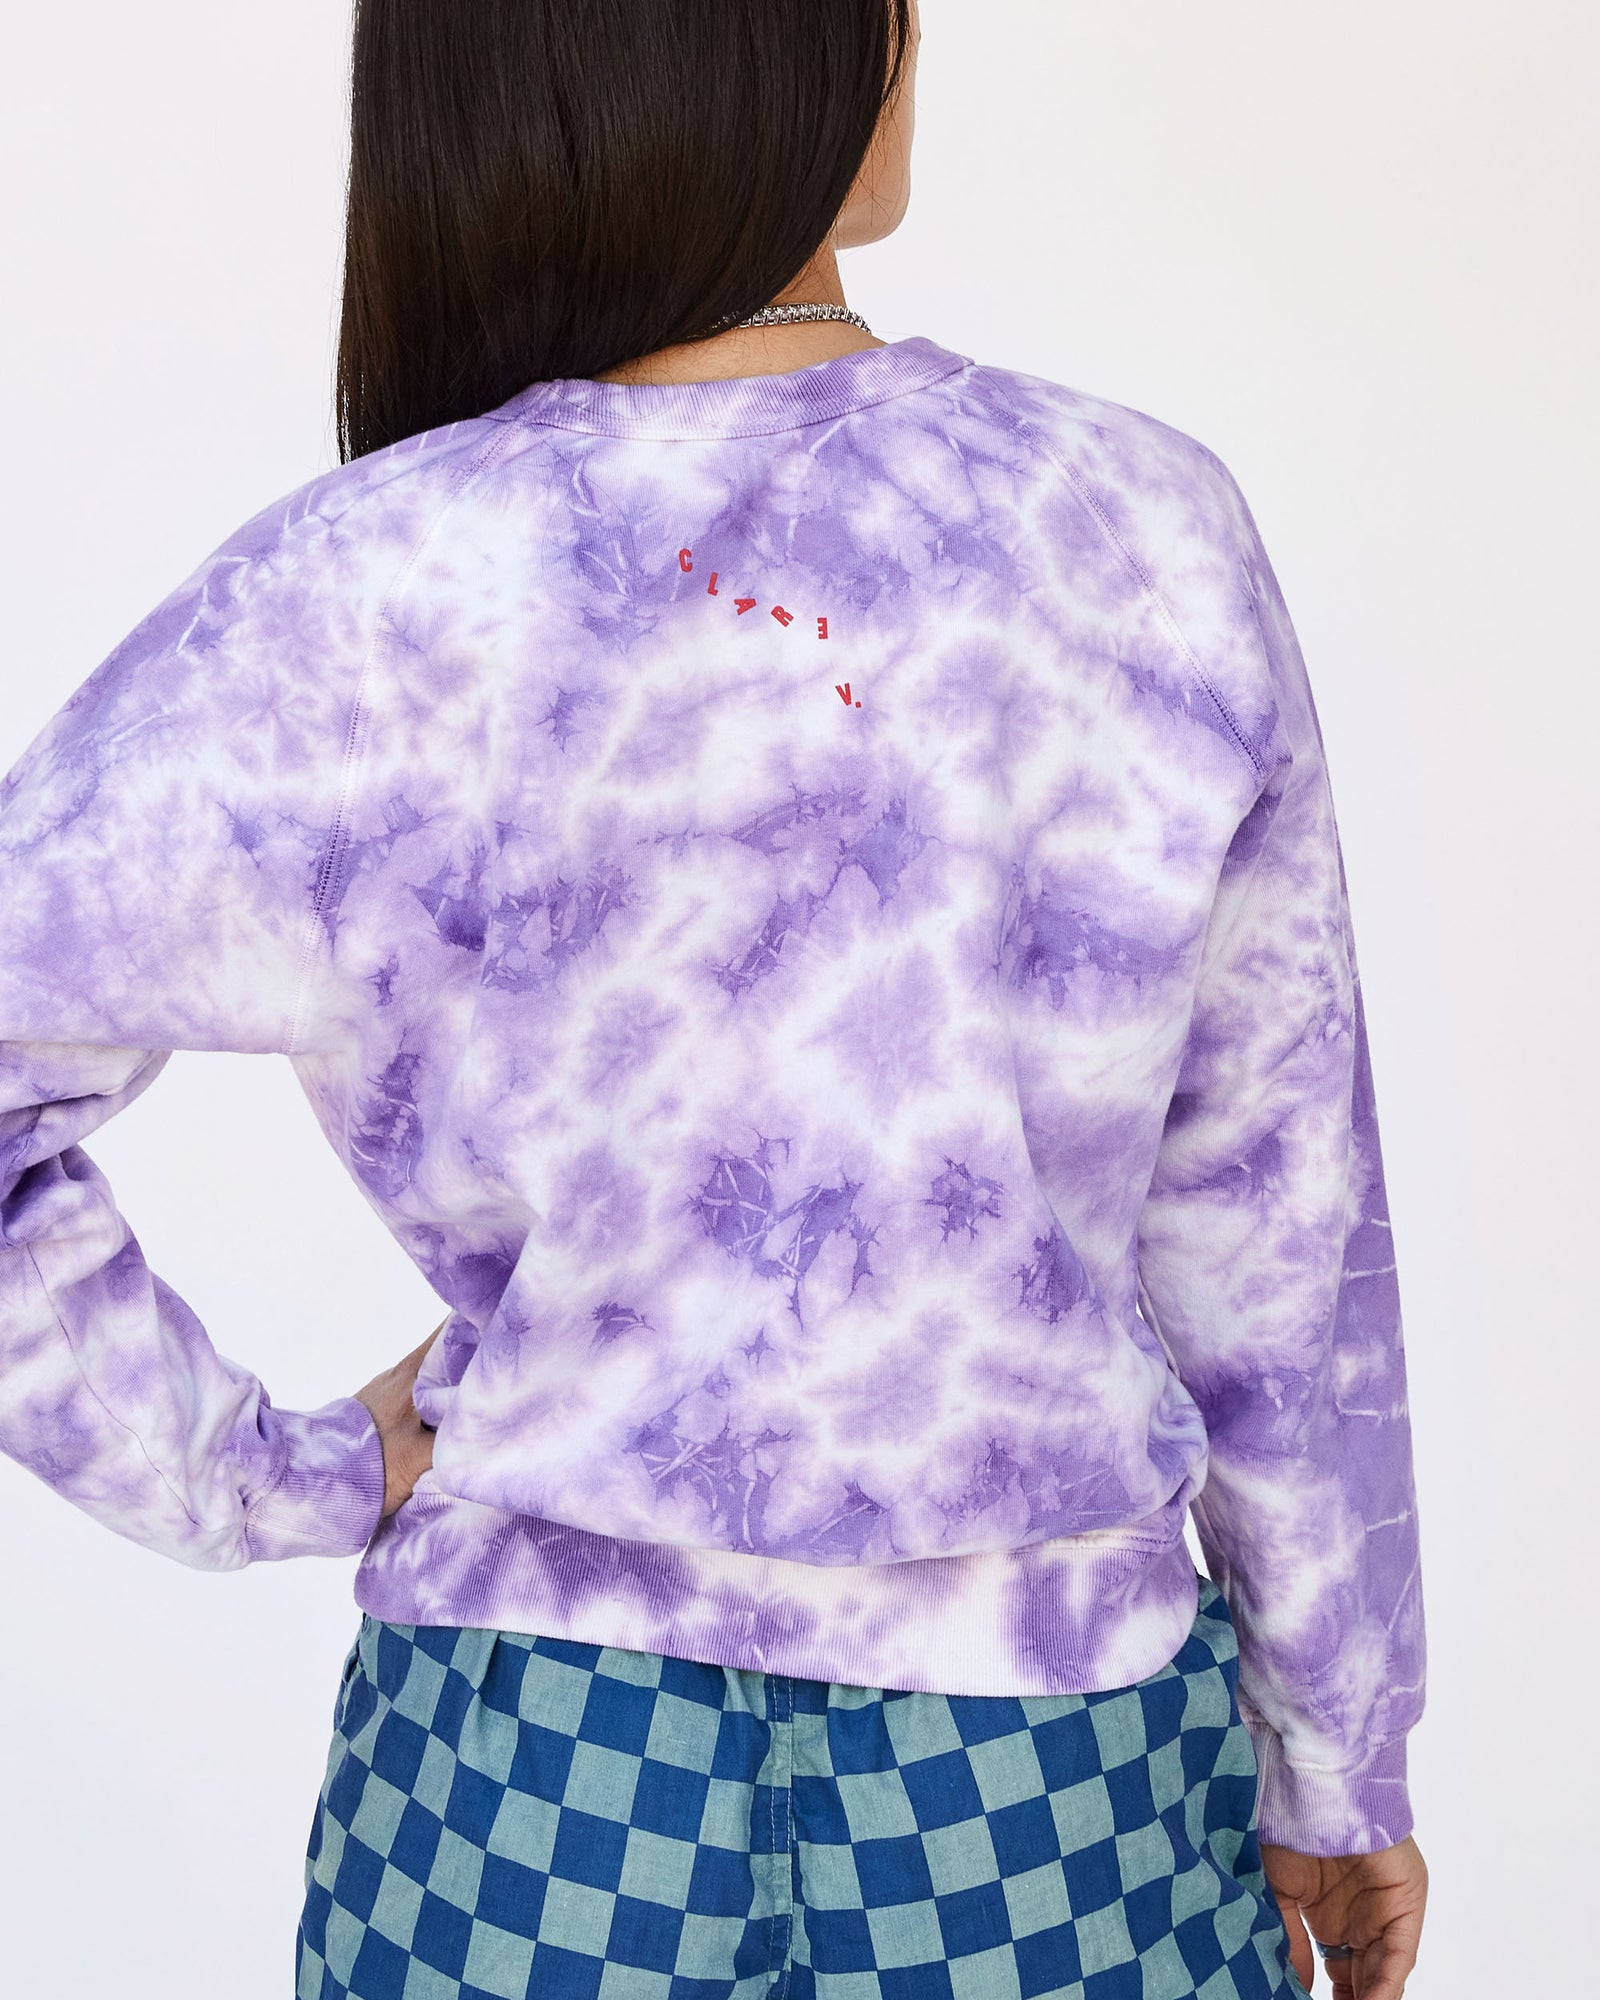 Violet Cloud Tie-Dye with Poppy Lips Sweatshirt on Ami - Back